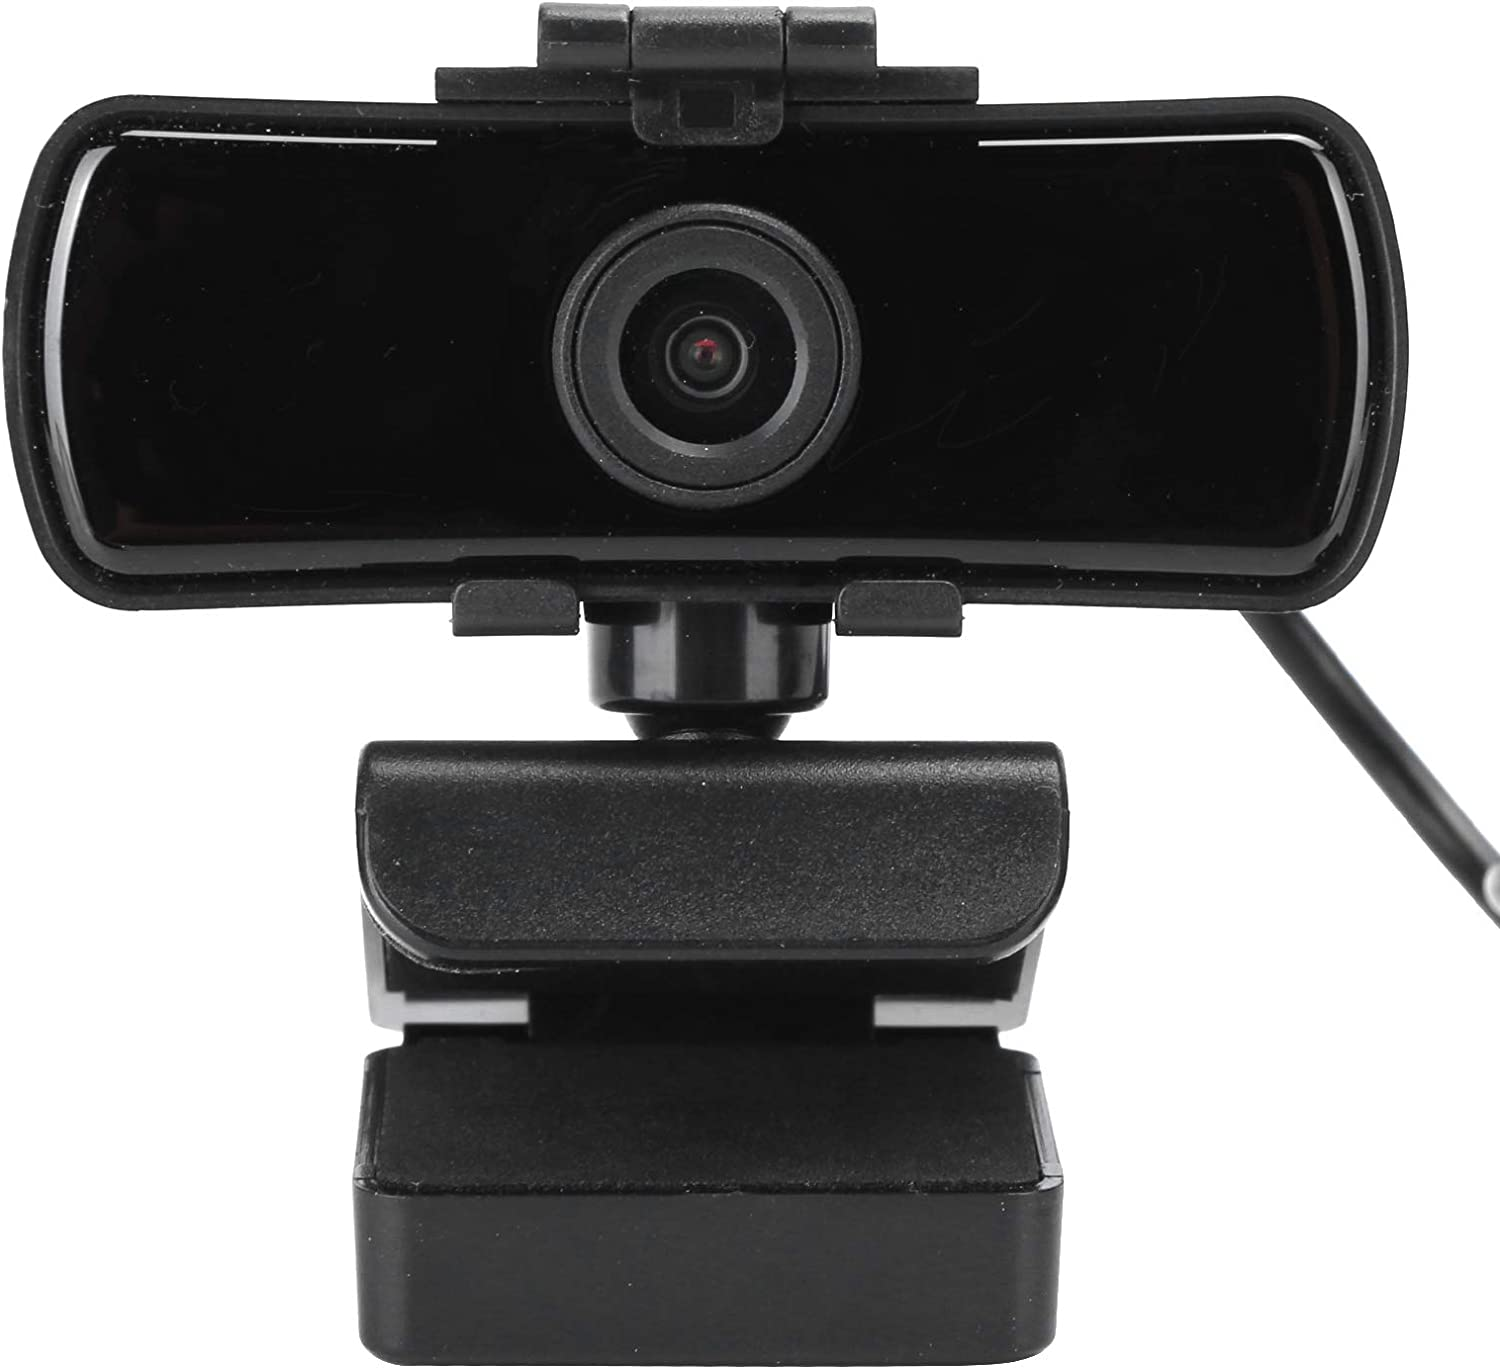 HD Webcam with Microphone High 1080P Definition Rotation Max 76% Ranking TOP14 OFF